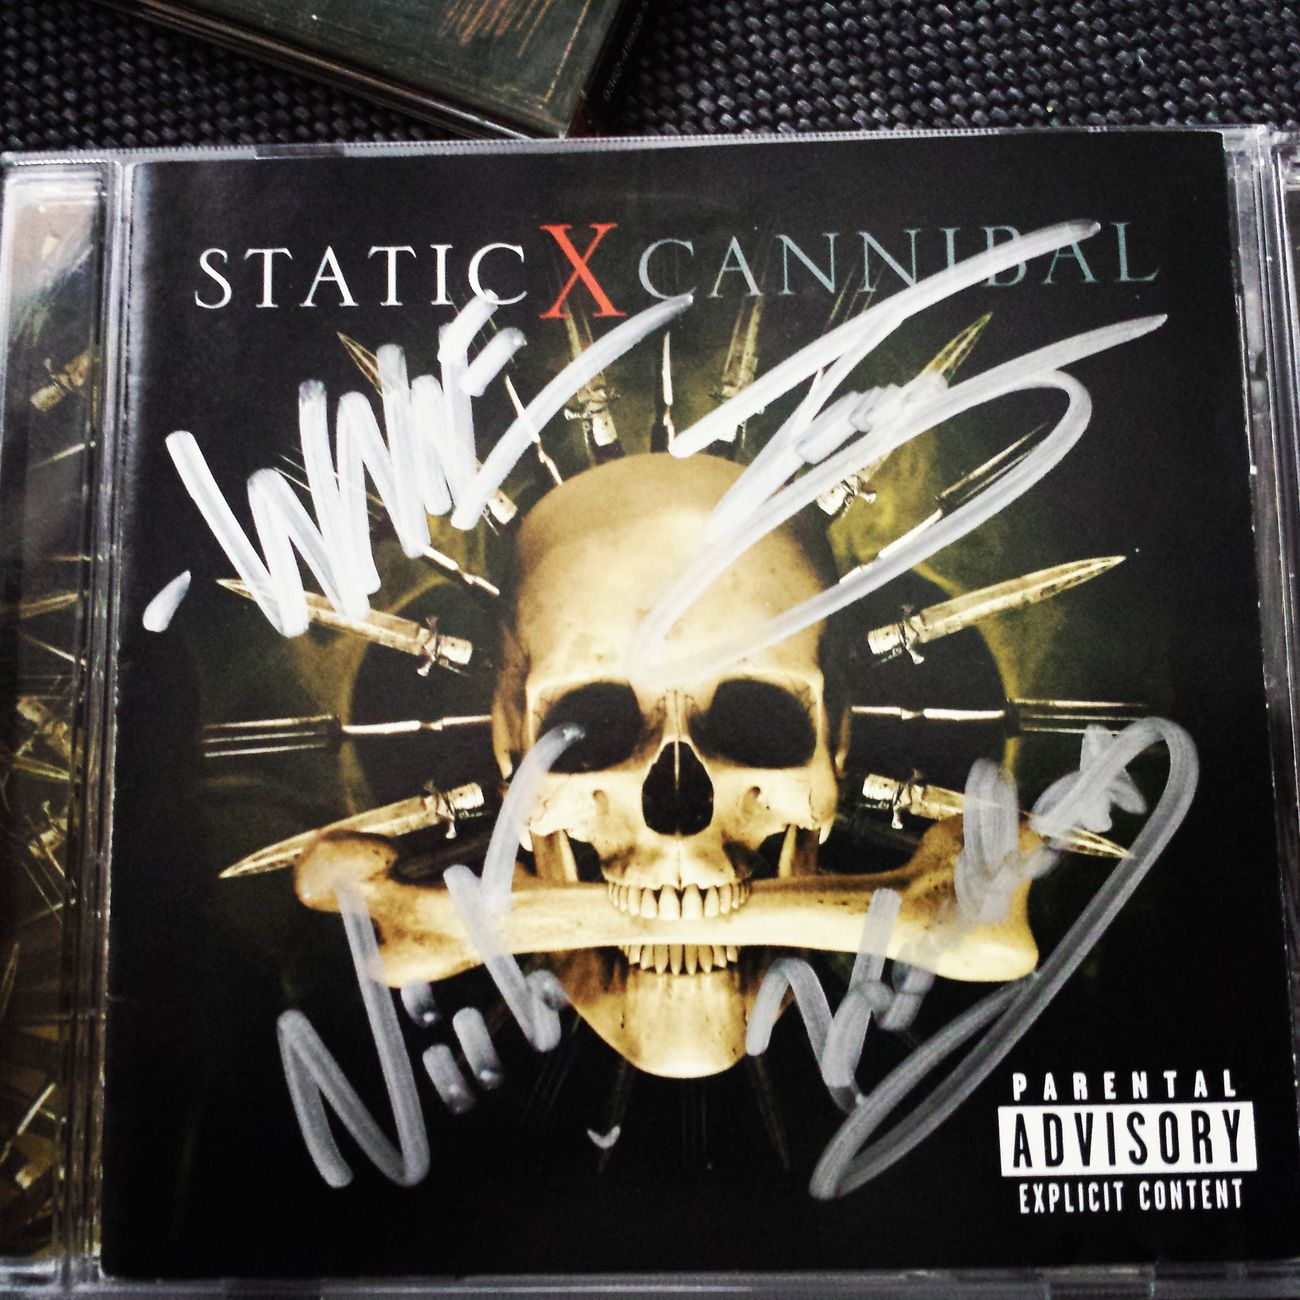 Signed copy of the album Cannibal by Static-X. Autographs